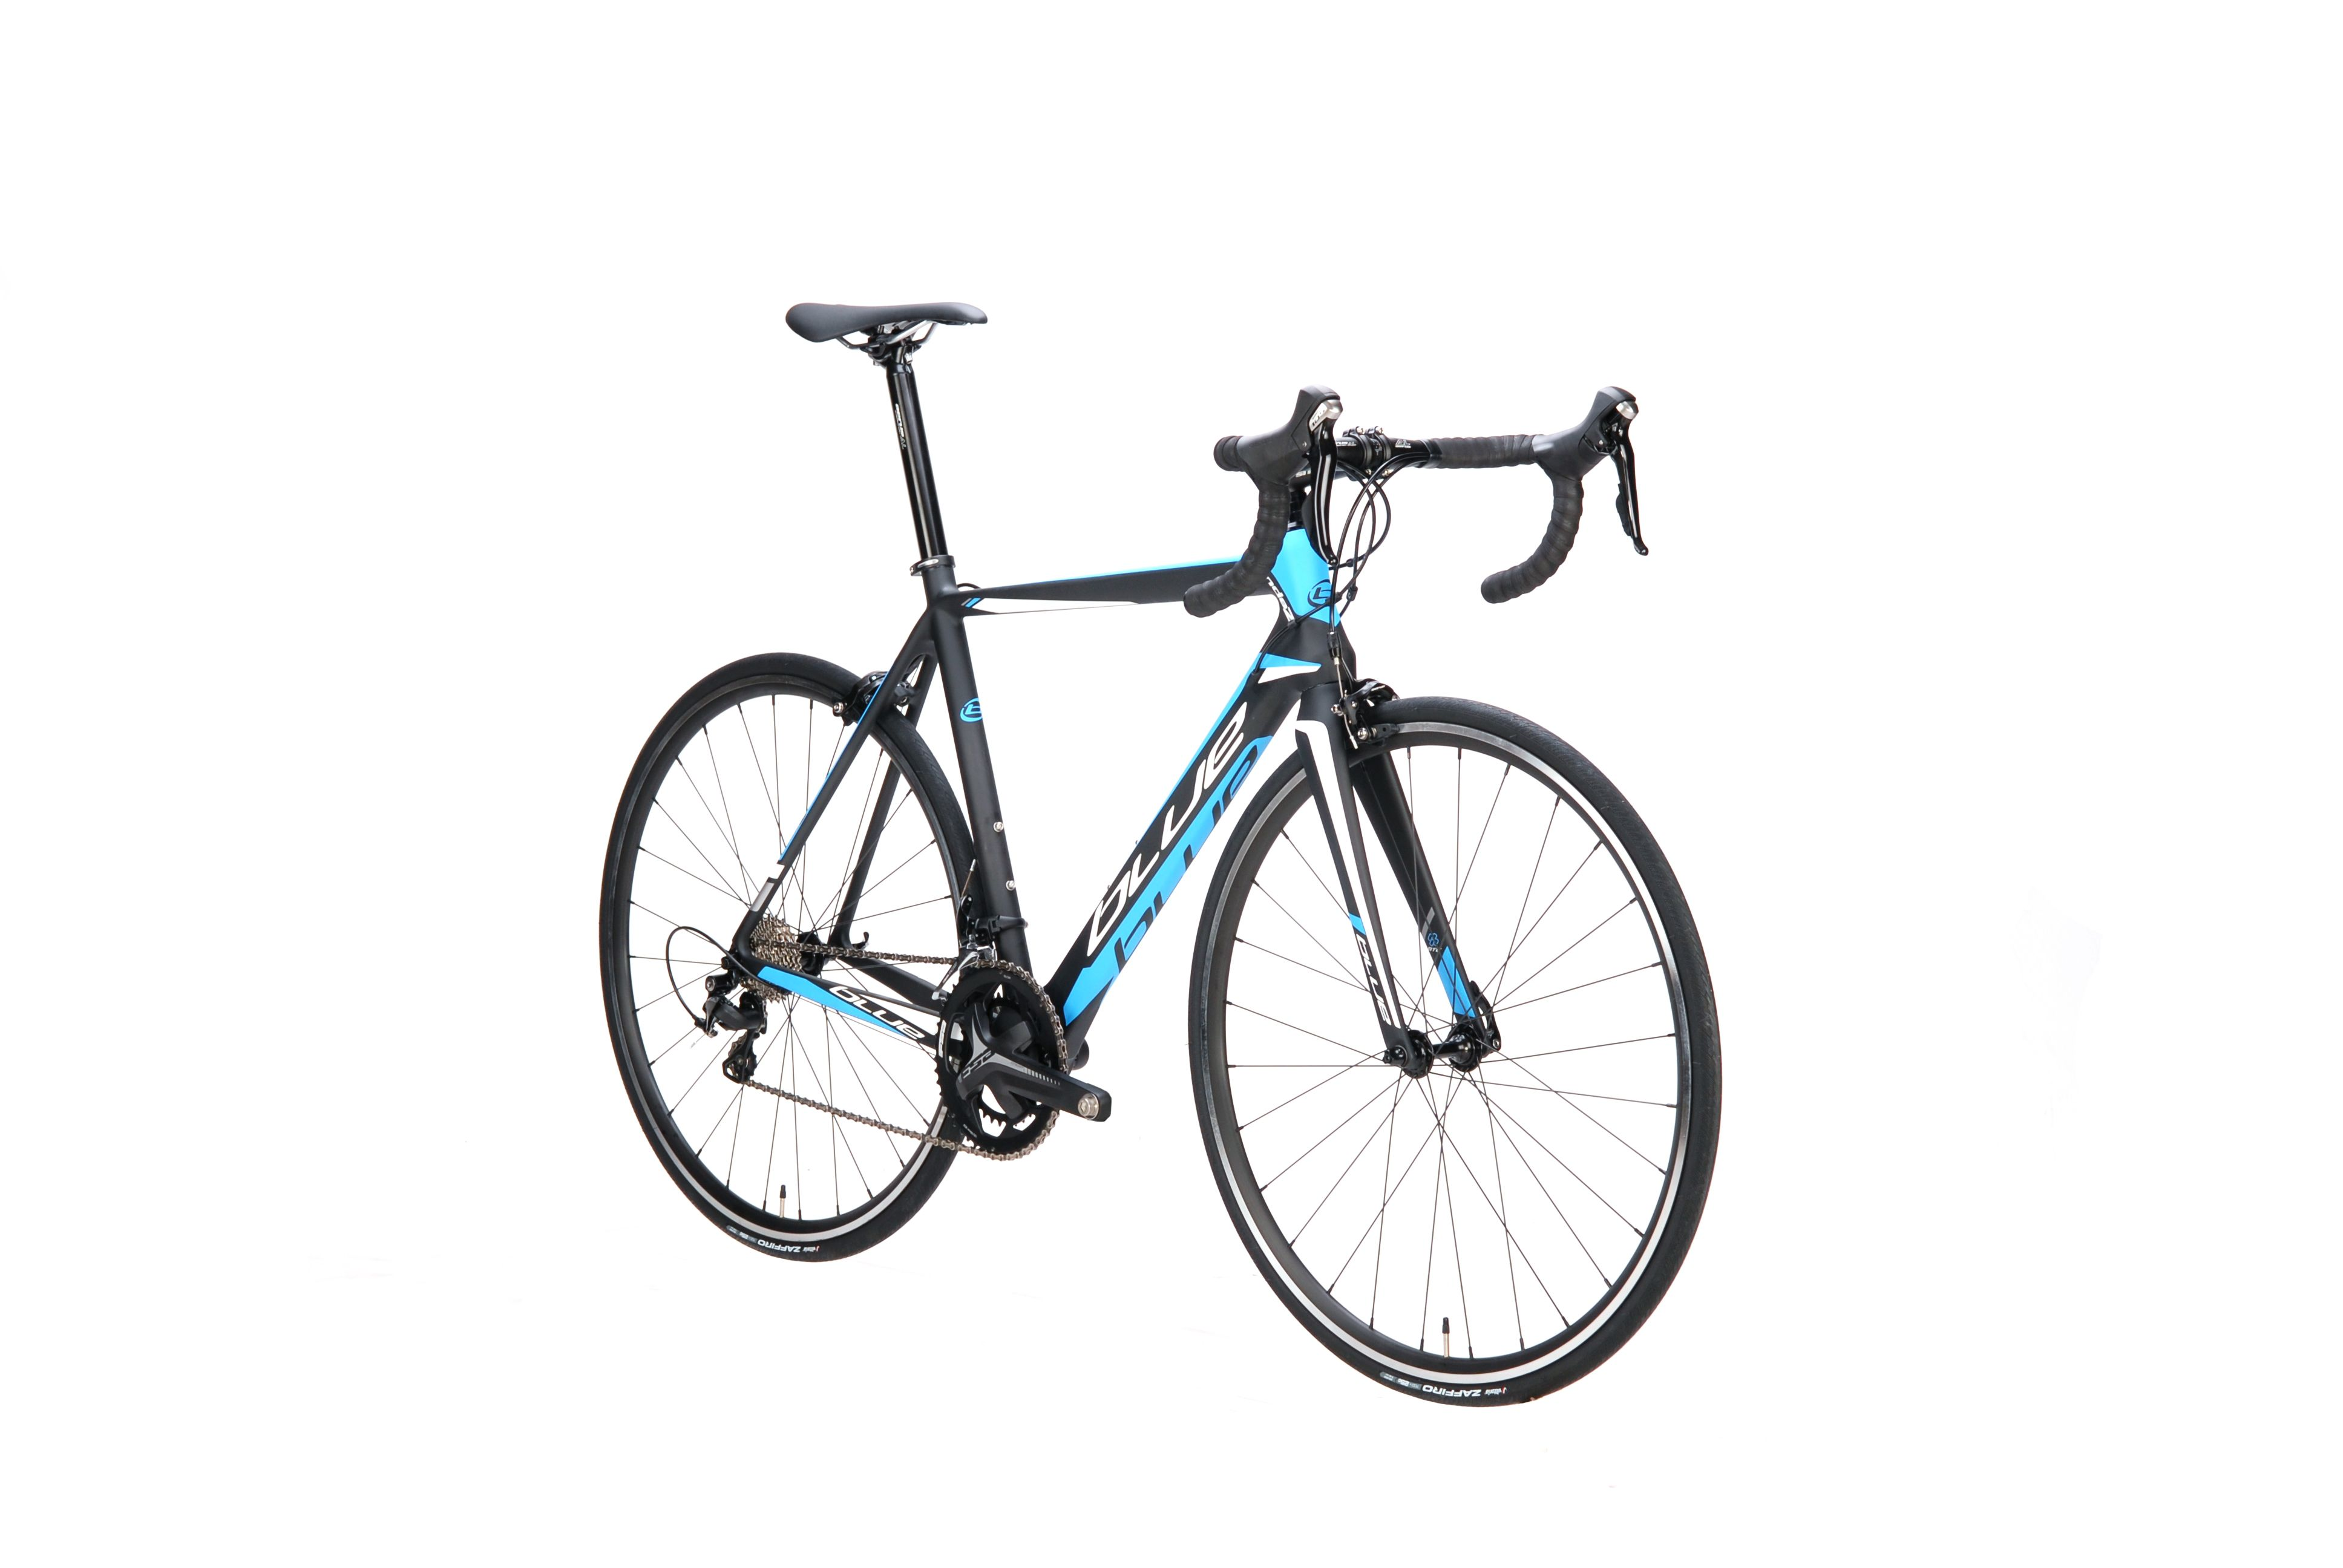 A Full Carbon Bike For 1100 Blue Bicycles Releases Andaz Road